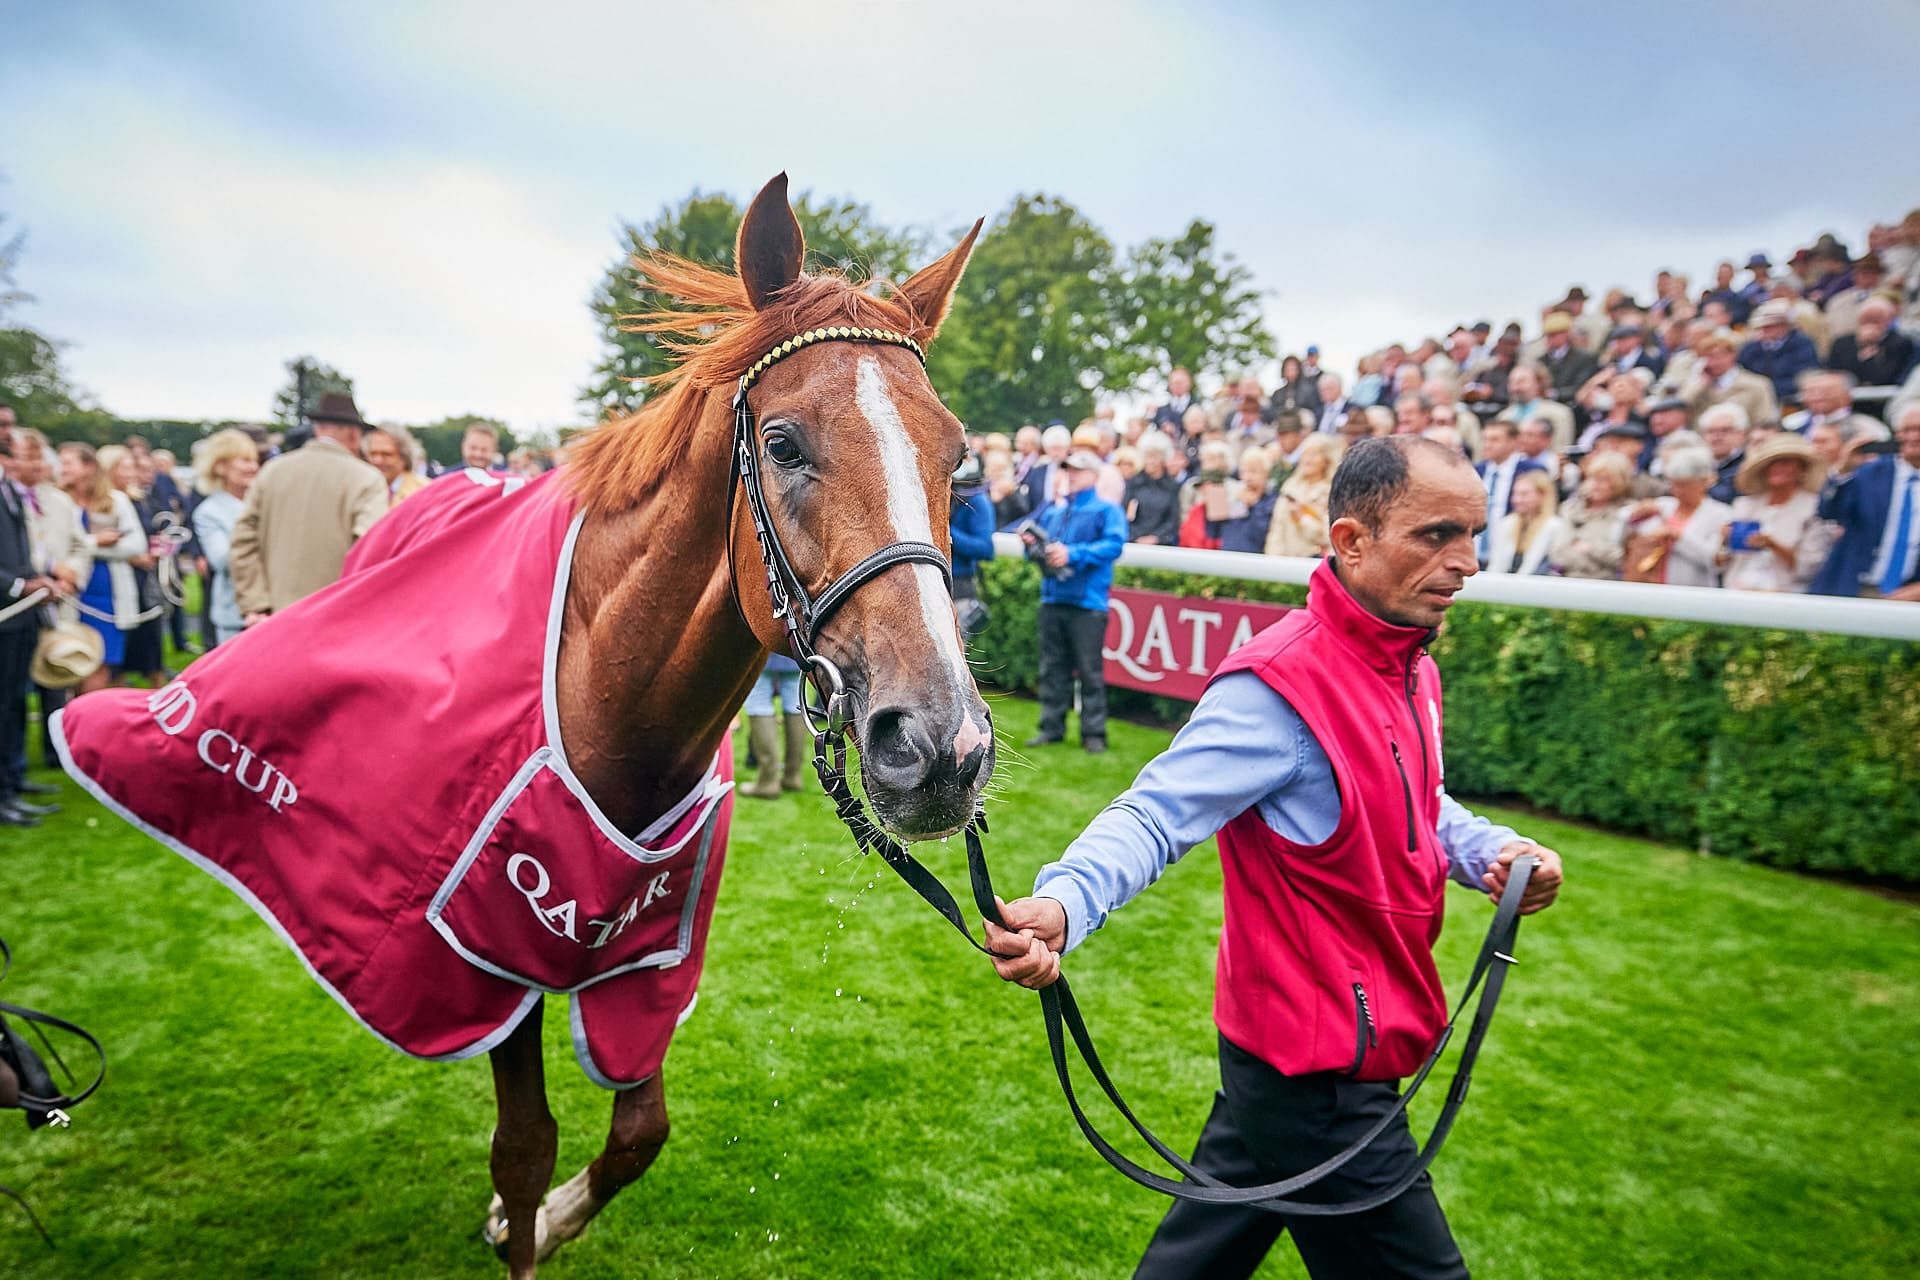 Dominic-James-Horse-Racing-QGF2019_DominicJames-01281-0074.JPG